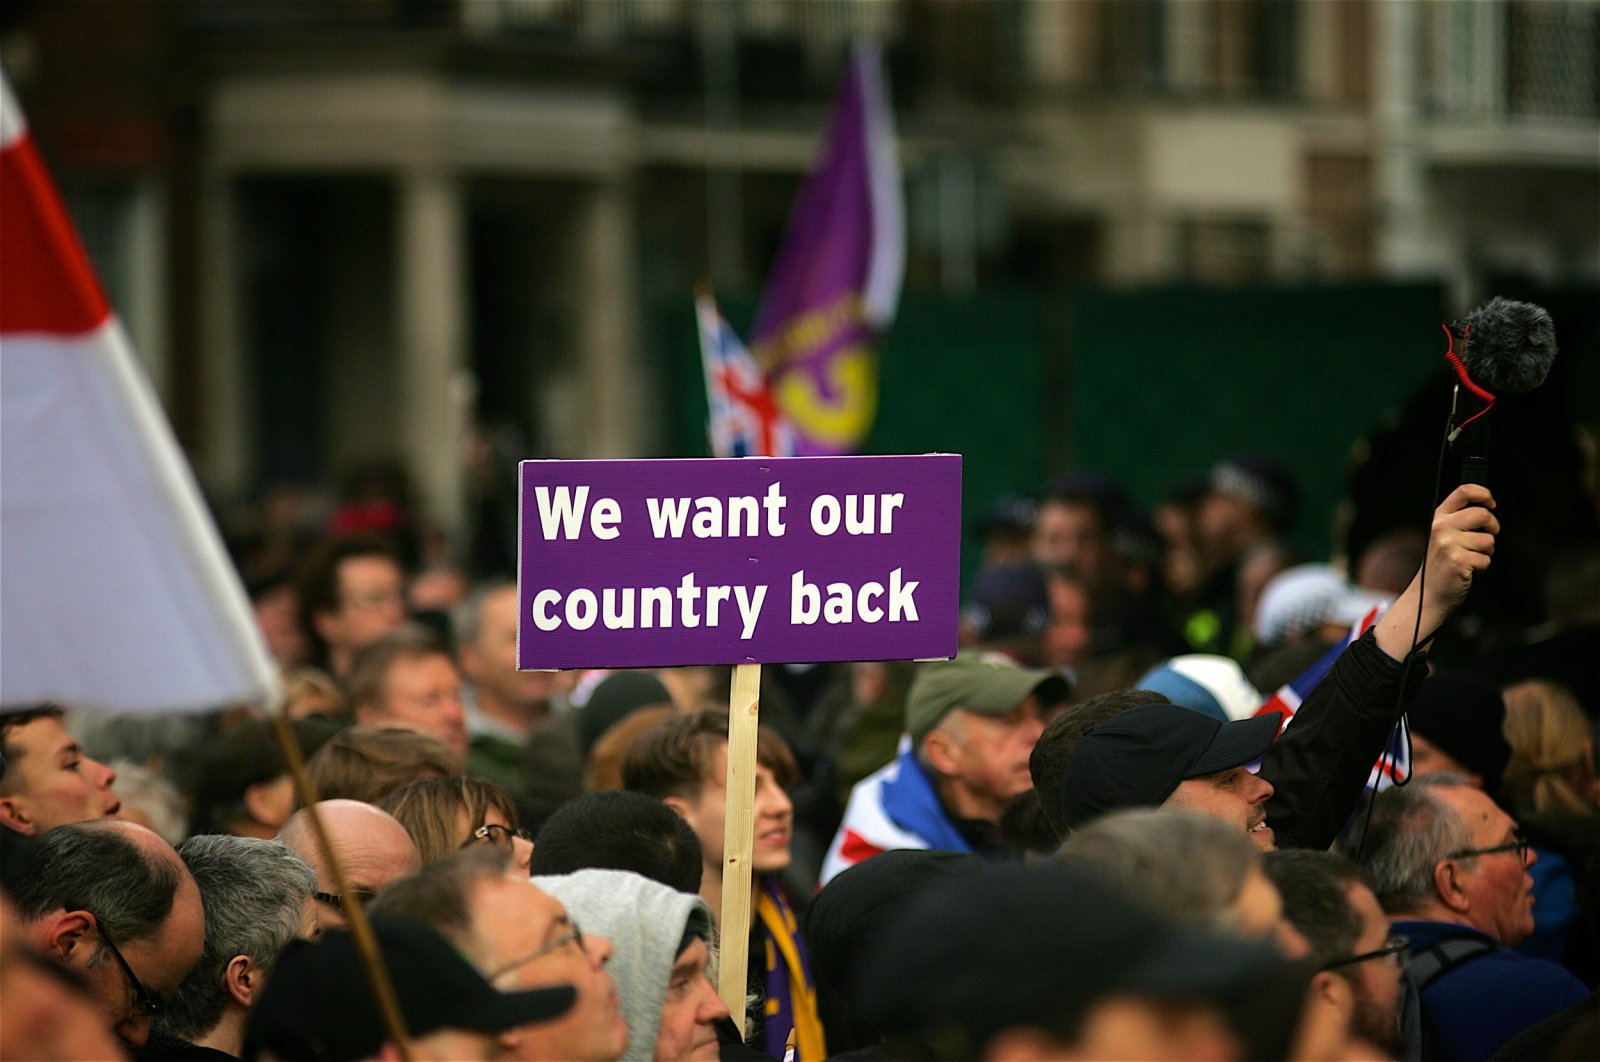 UKIP supporters join Gerard Batten and Tommy Robinson on the Brexit rally organized by U.K. Independence Party, London, U.K., Sept. 12, 2018. (Shutterstock Photo)